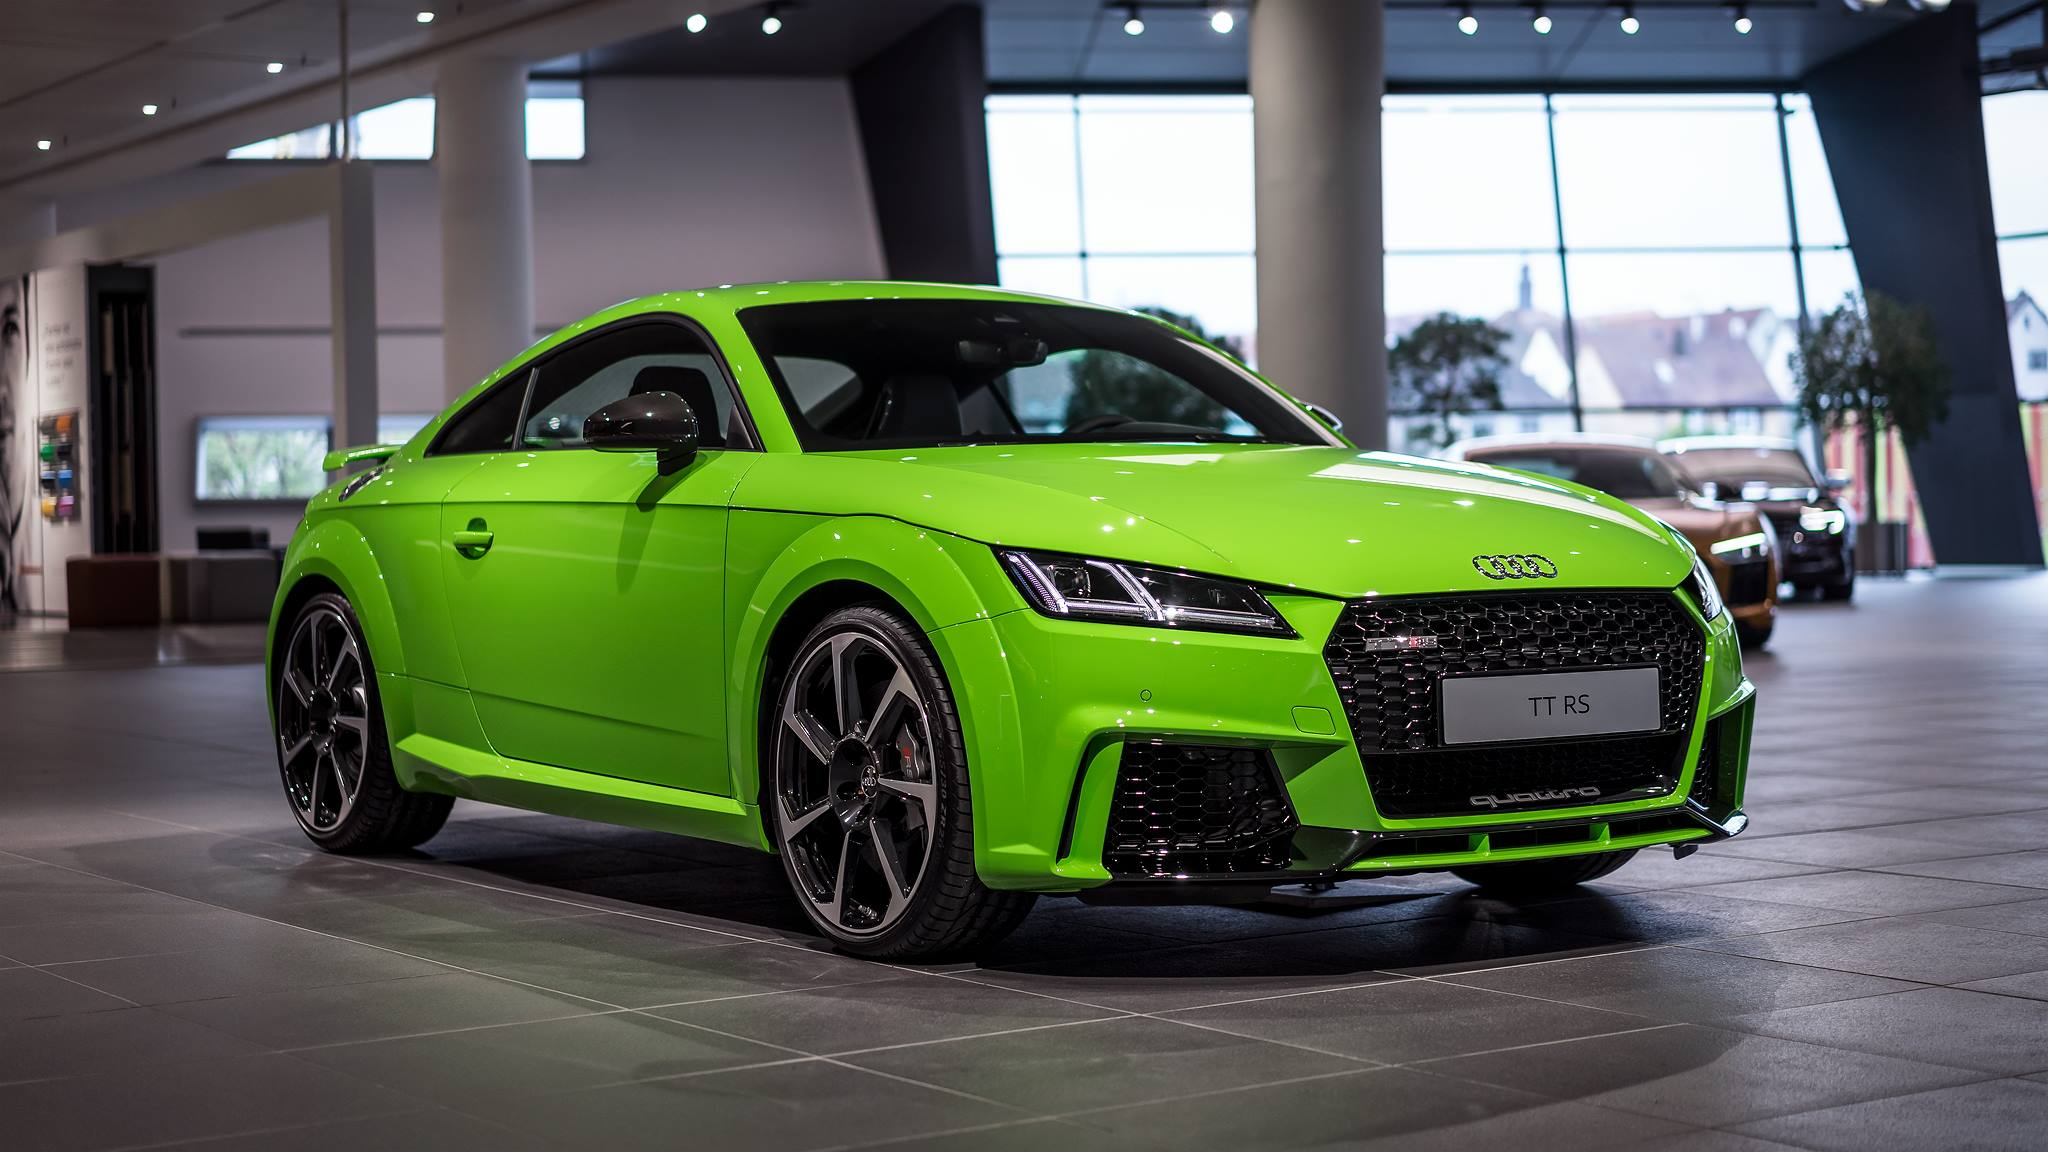 66 400 audi tt rs coupe in green looks like a lamborghini miura from the future autoevolution. Black Bedroom Furniture Sets. Home Design Ideas